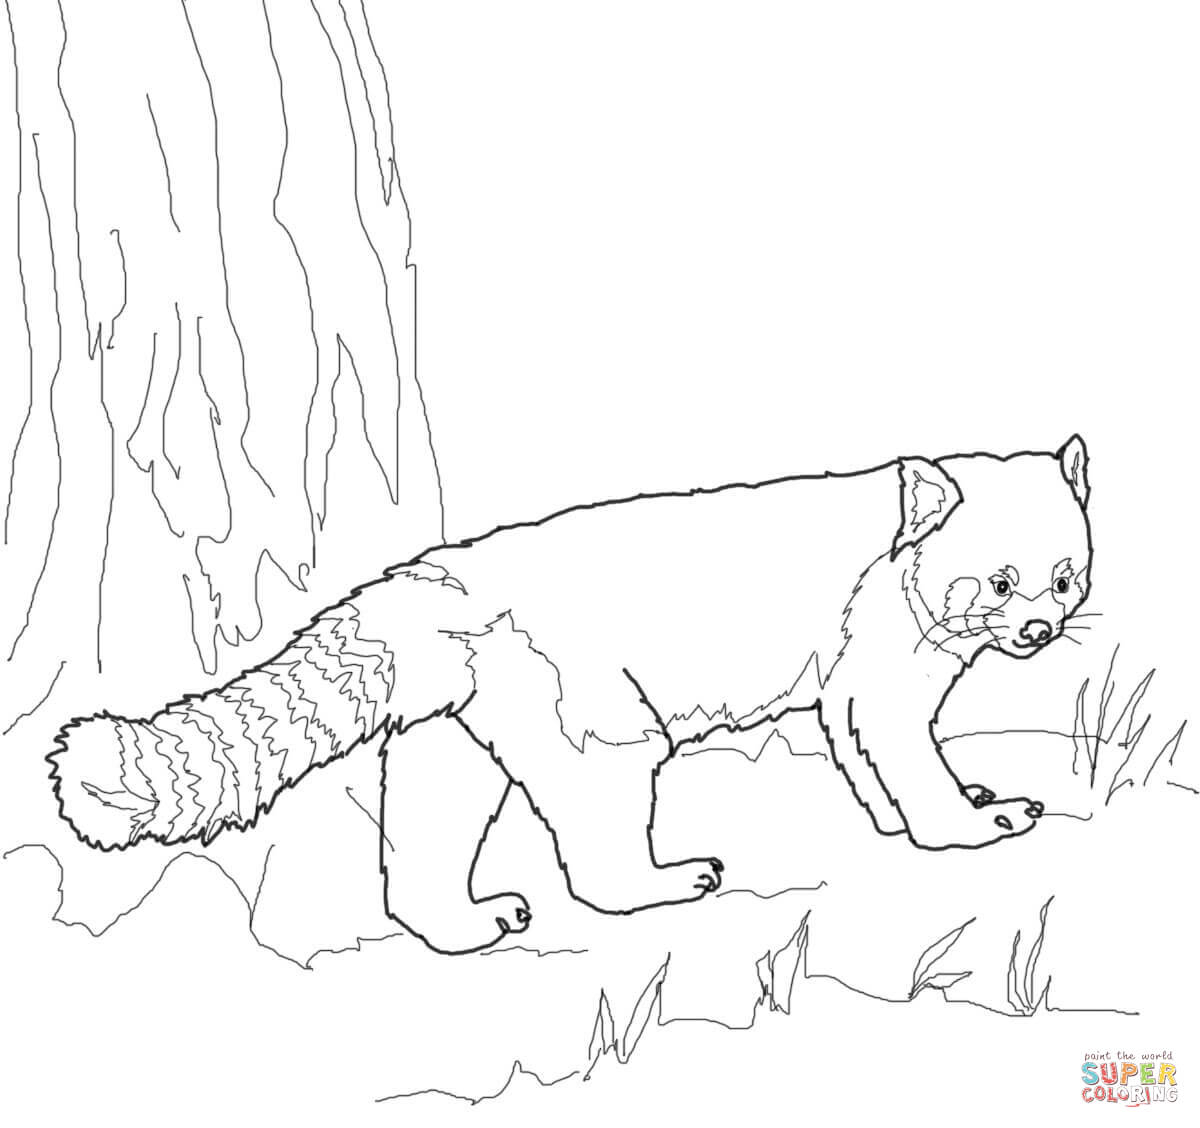 Red Panda Coloring Page Red Panda Coloring Page Free Printable Coloring Pages